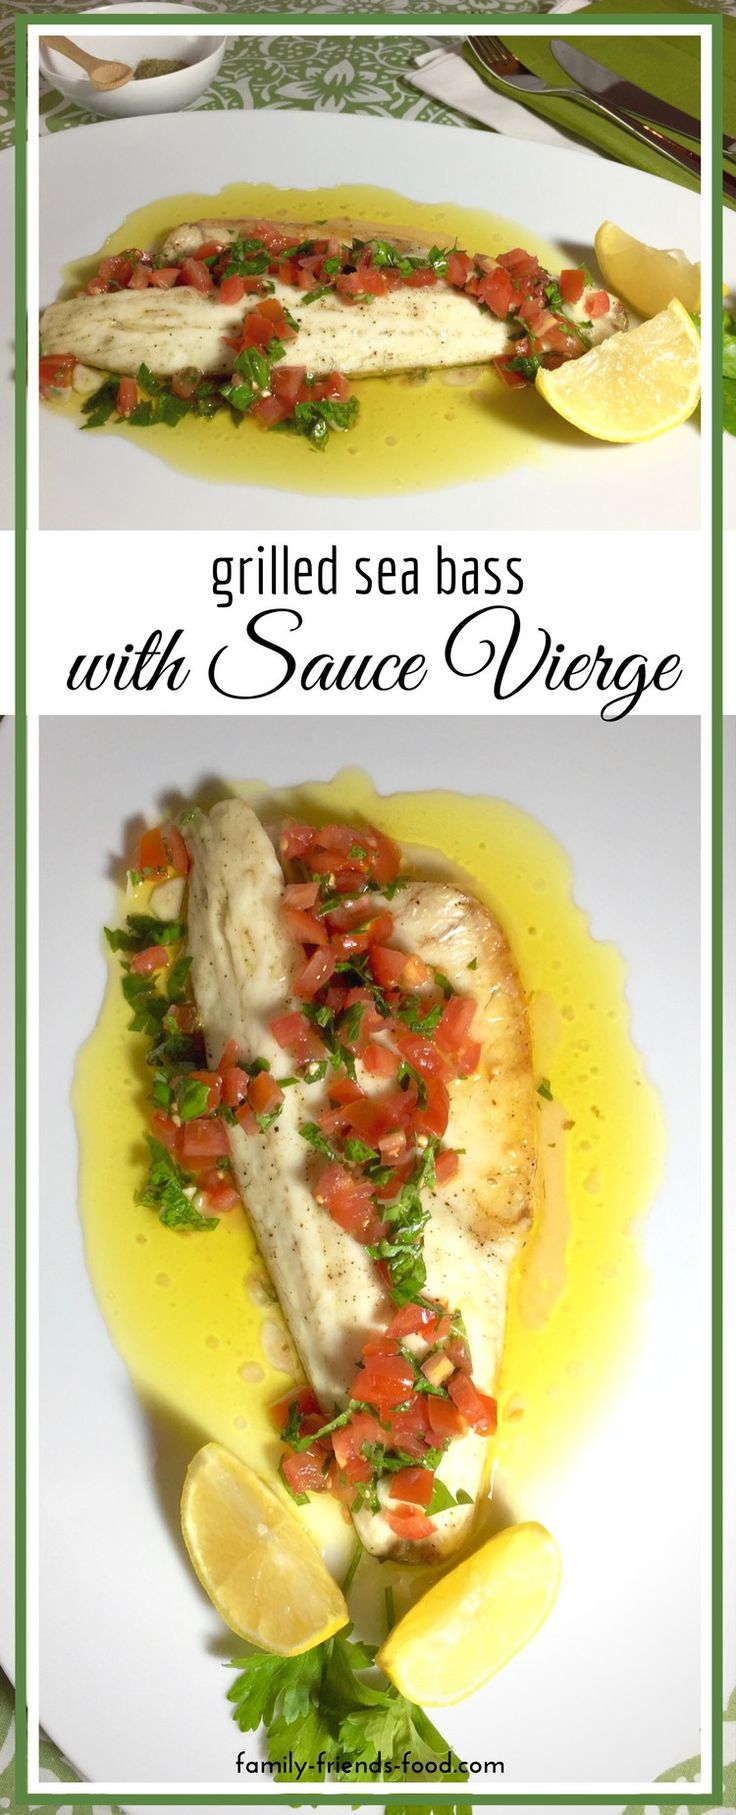 Succulent grilled fish topped with glorious sauce vierge - a deliciously simple French-inspired mixture of ripe tomato, herbs, garlic, lemon & extra virgin olive oil.